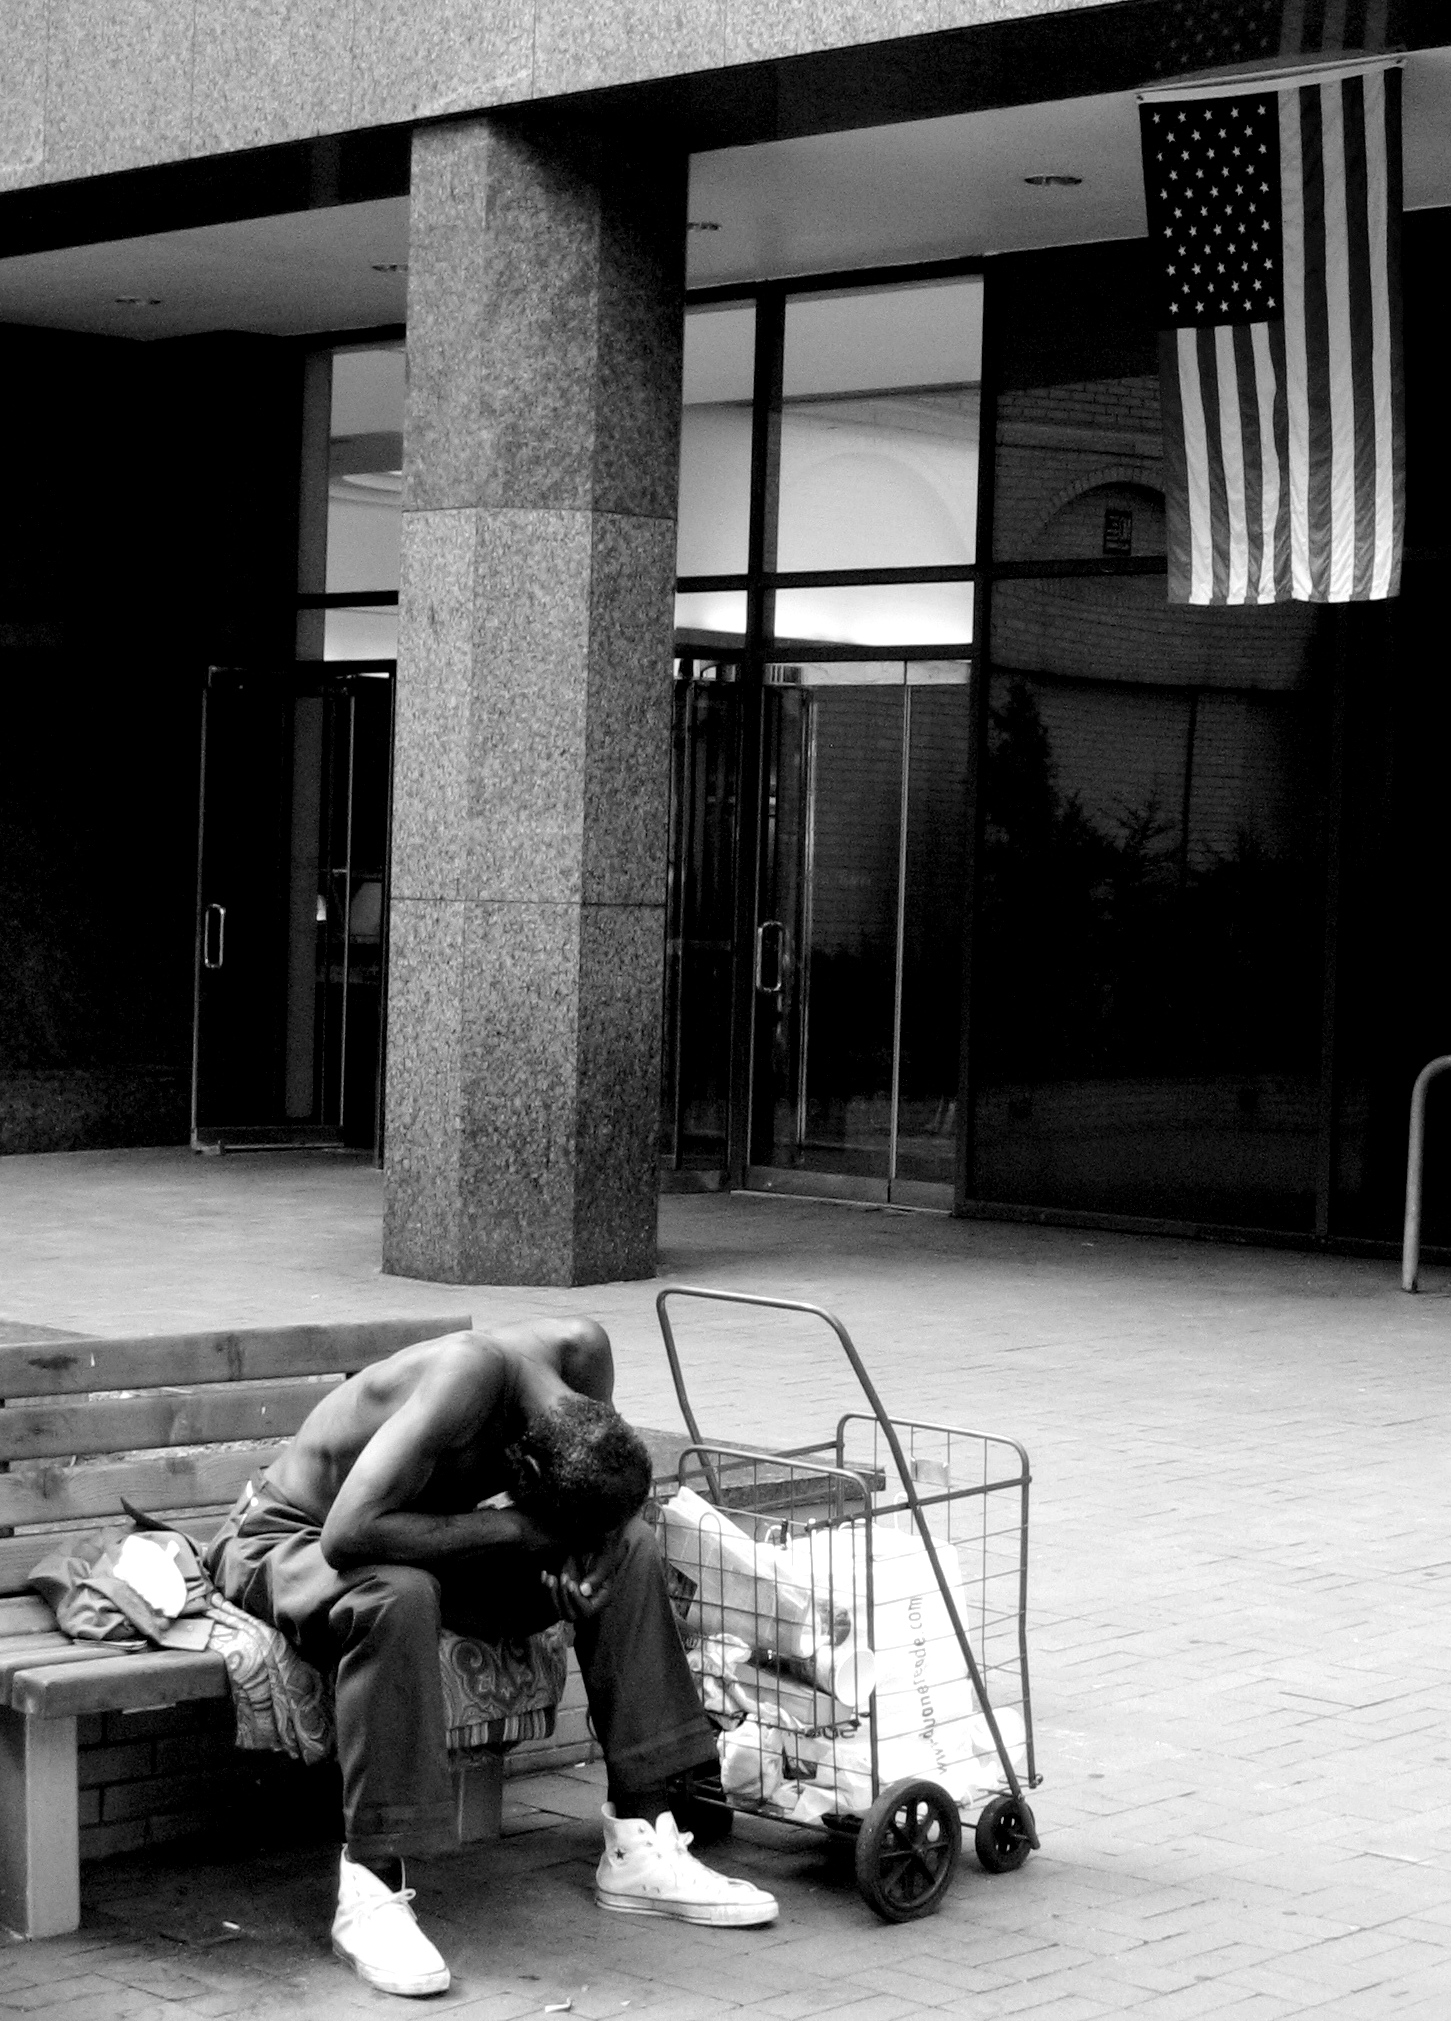 homelessness in the united states - wikipedia